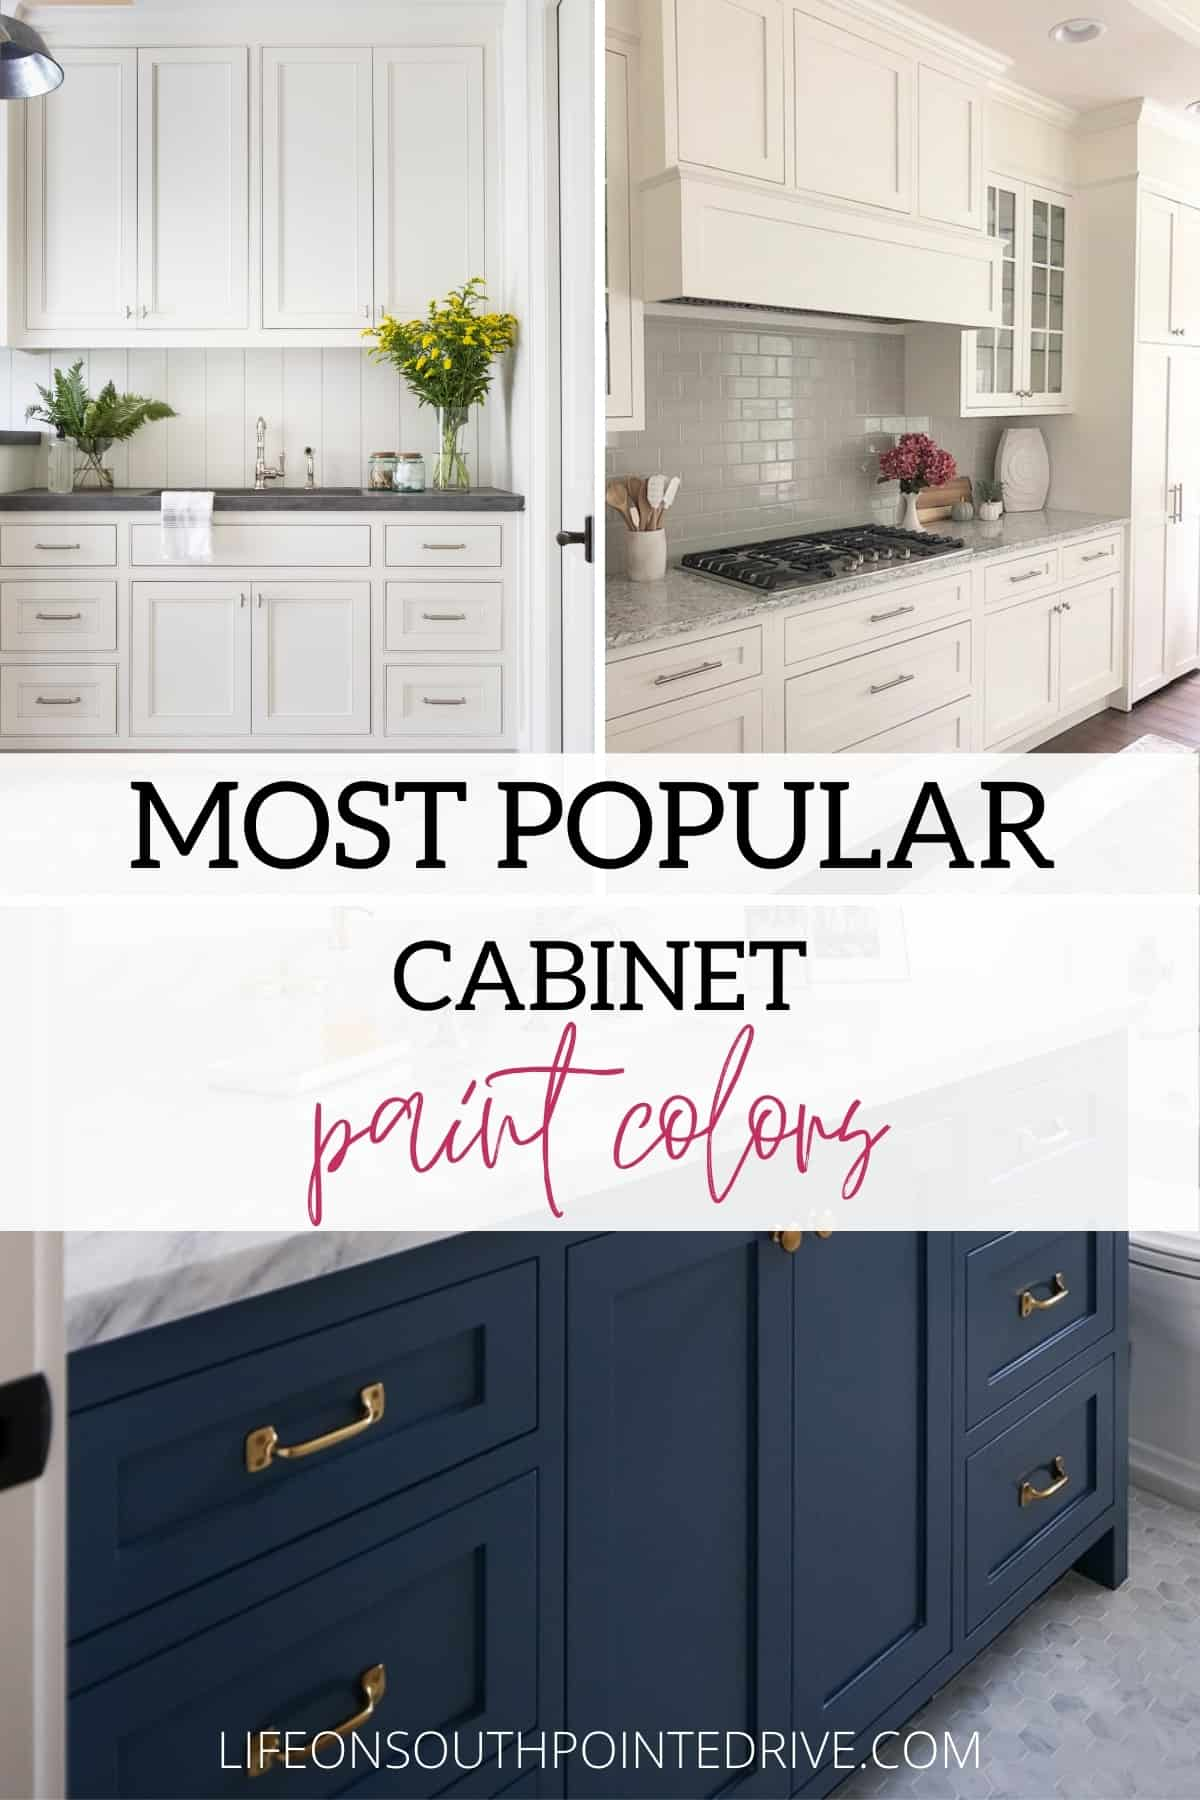 The Most Popular Cabinet Paint Colors   Life on Southpointe Drive